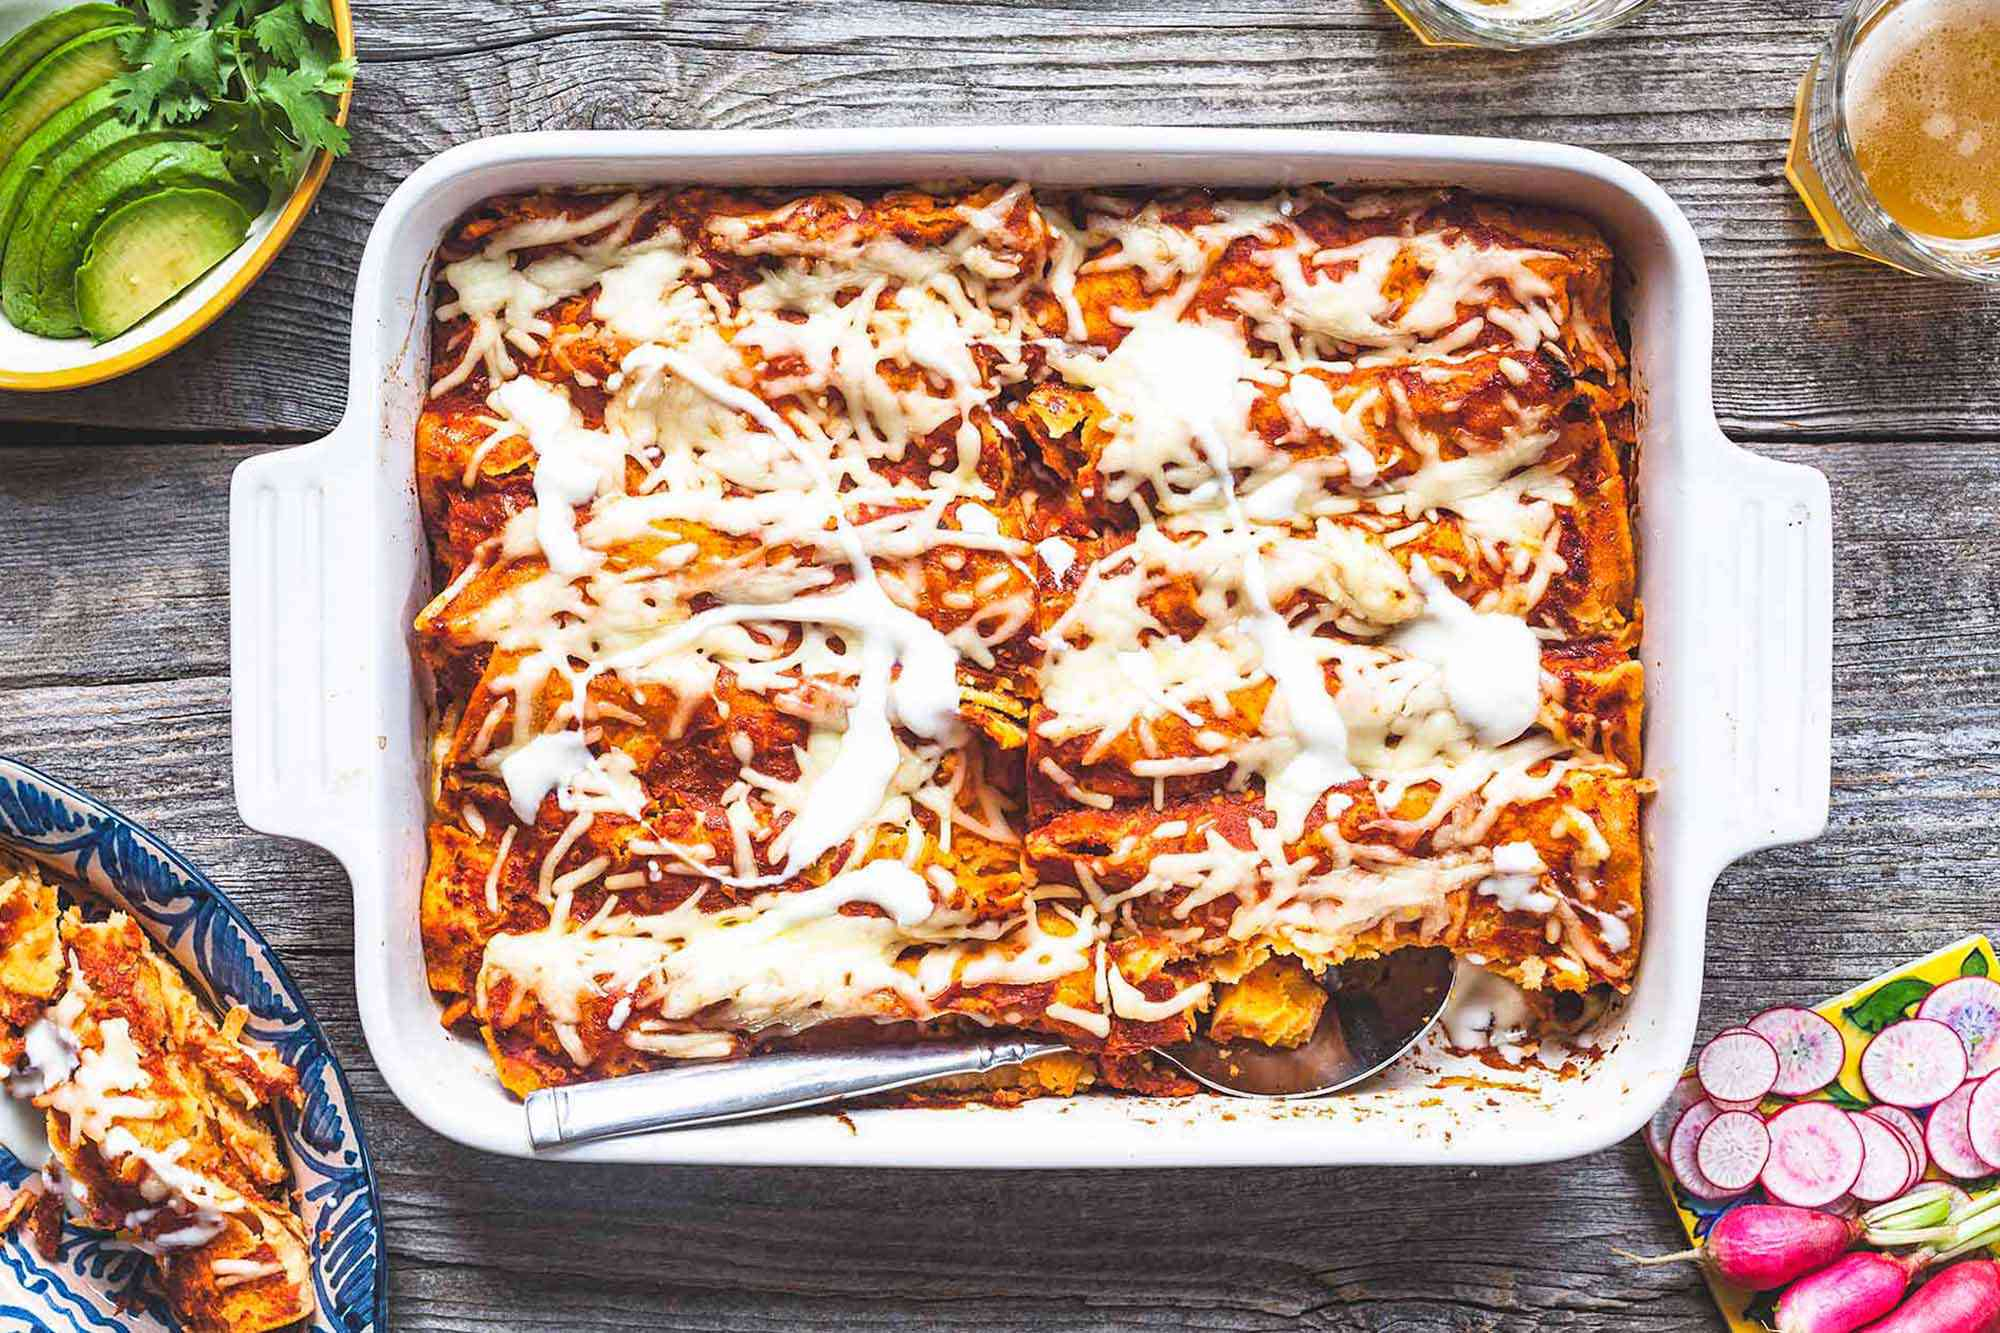 Casserole dish filled with easy vegetarian enchiladas fillled iwth butternut squash and topped with cheese